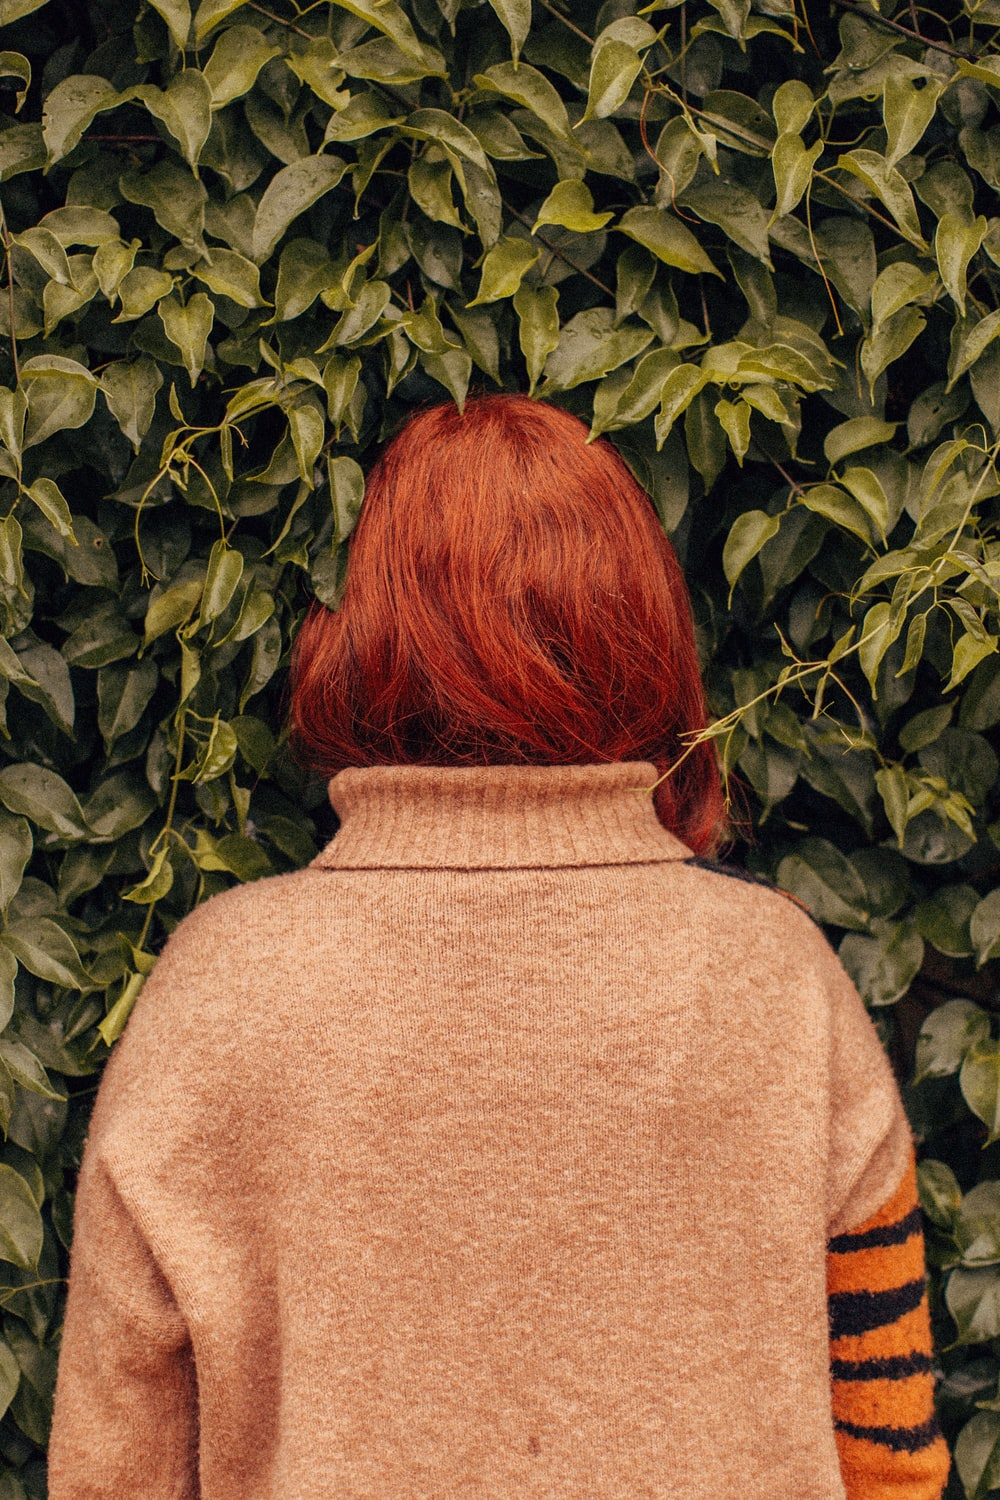 woman facing leafed plant